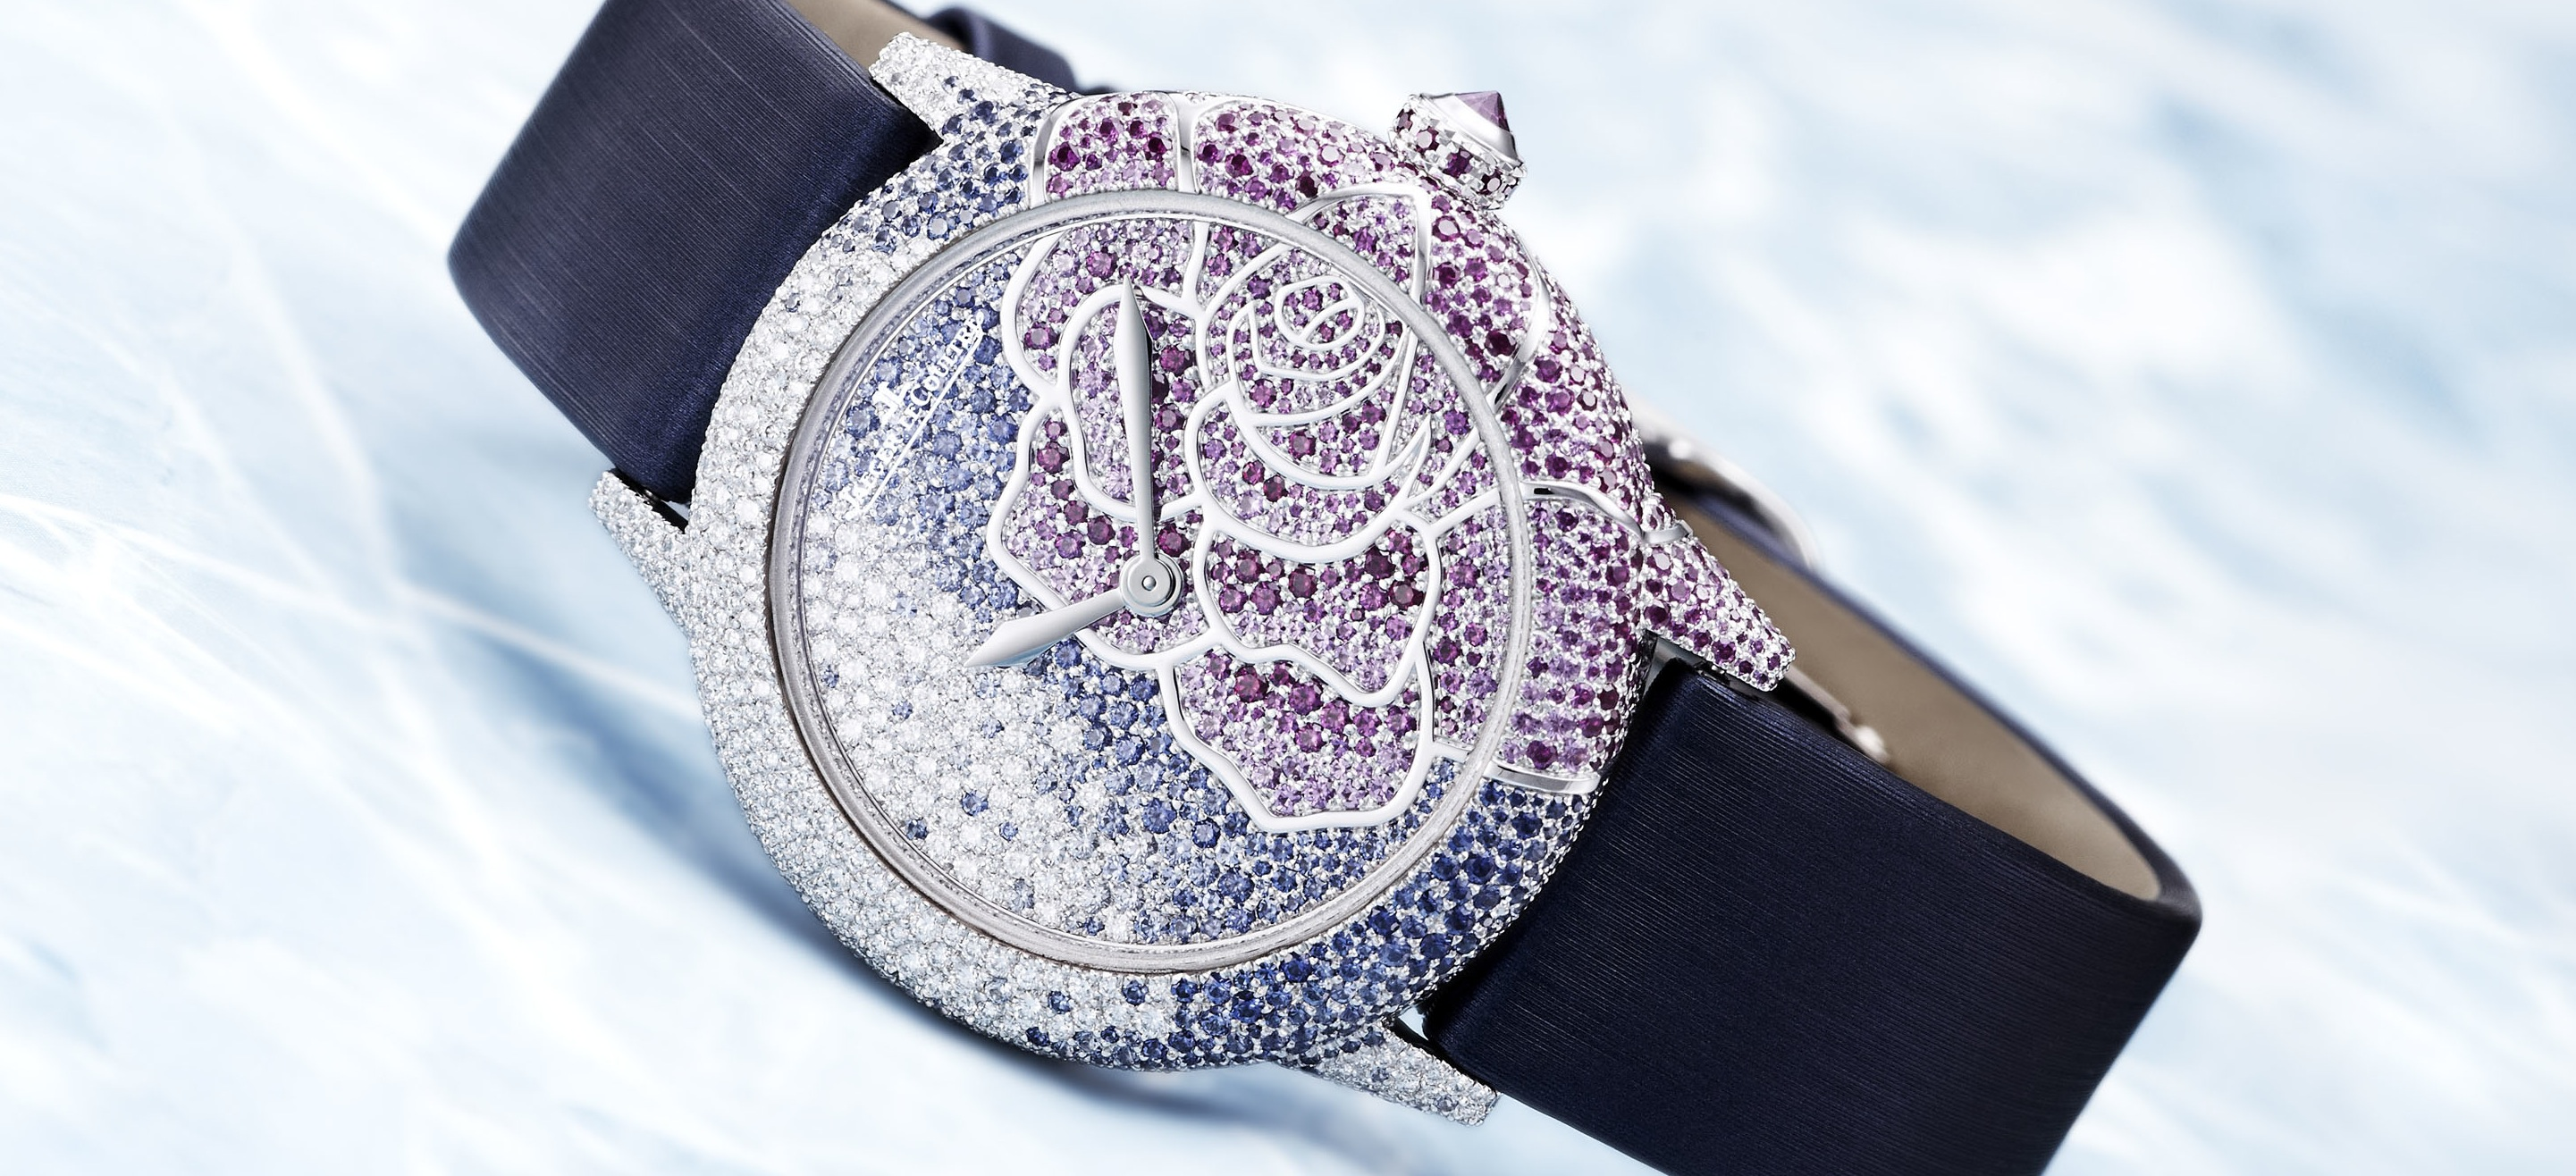 Jaeger-LeCoultre Rendez-Vous Art_rubies and sapphires